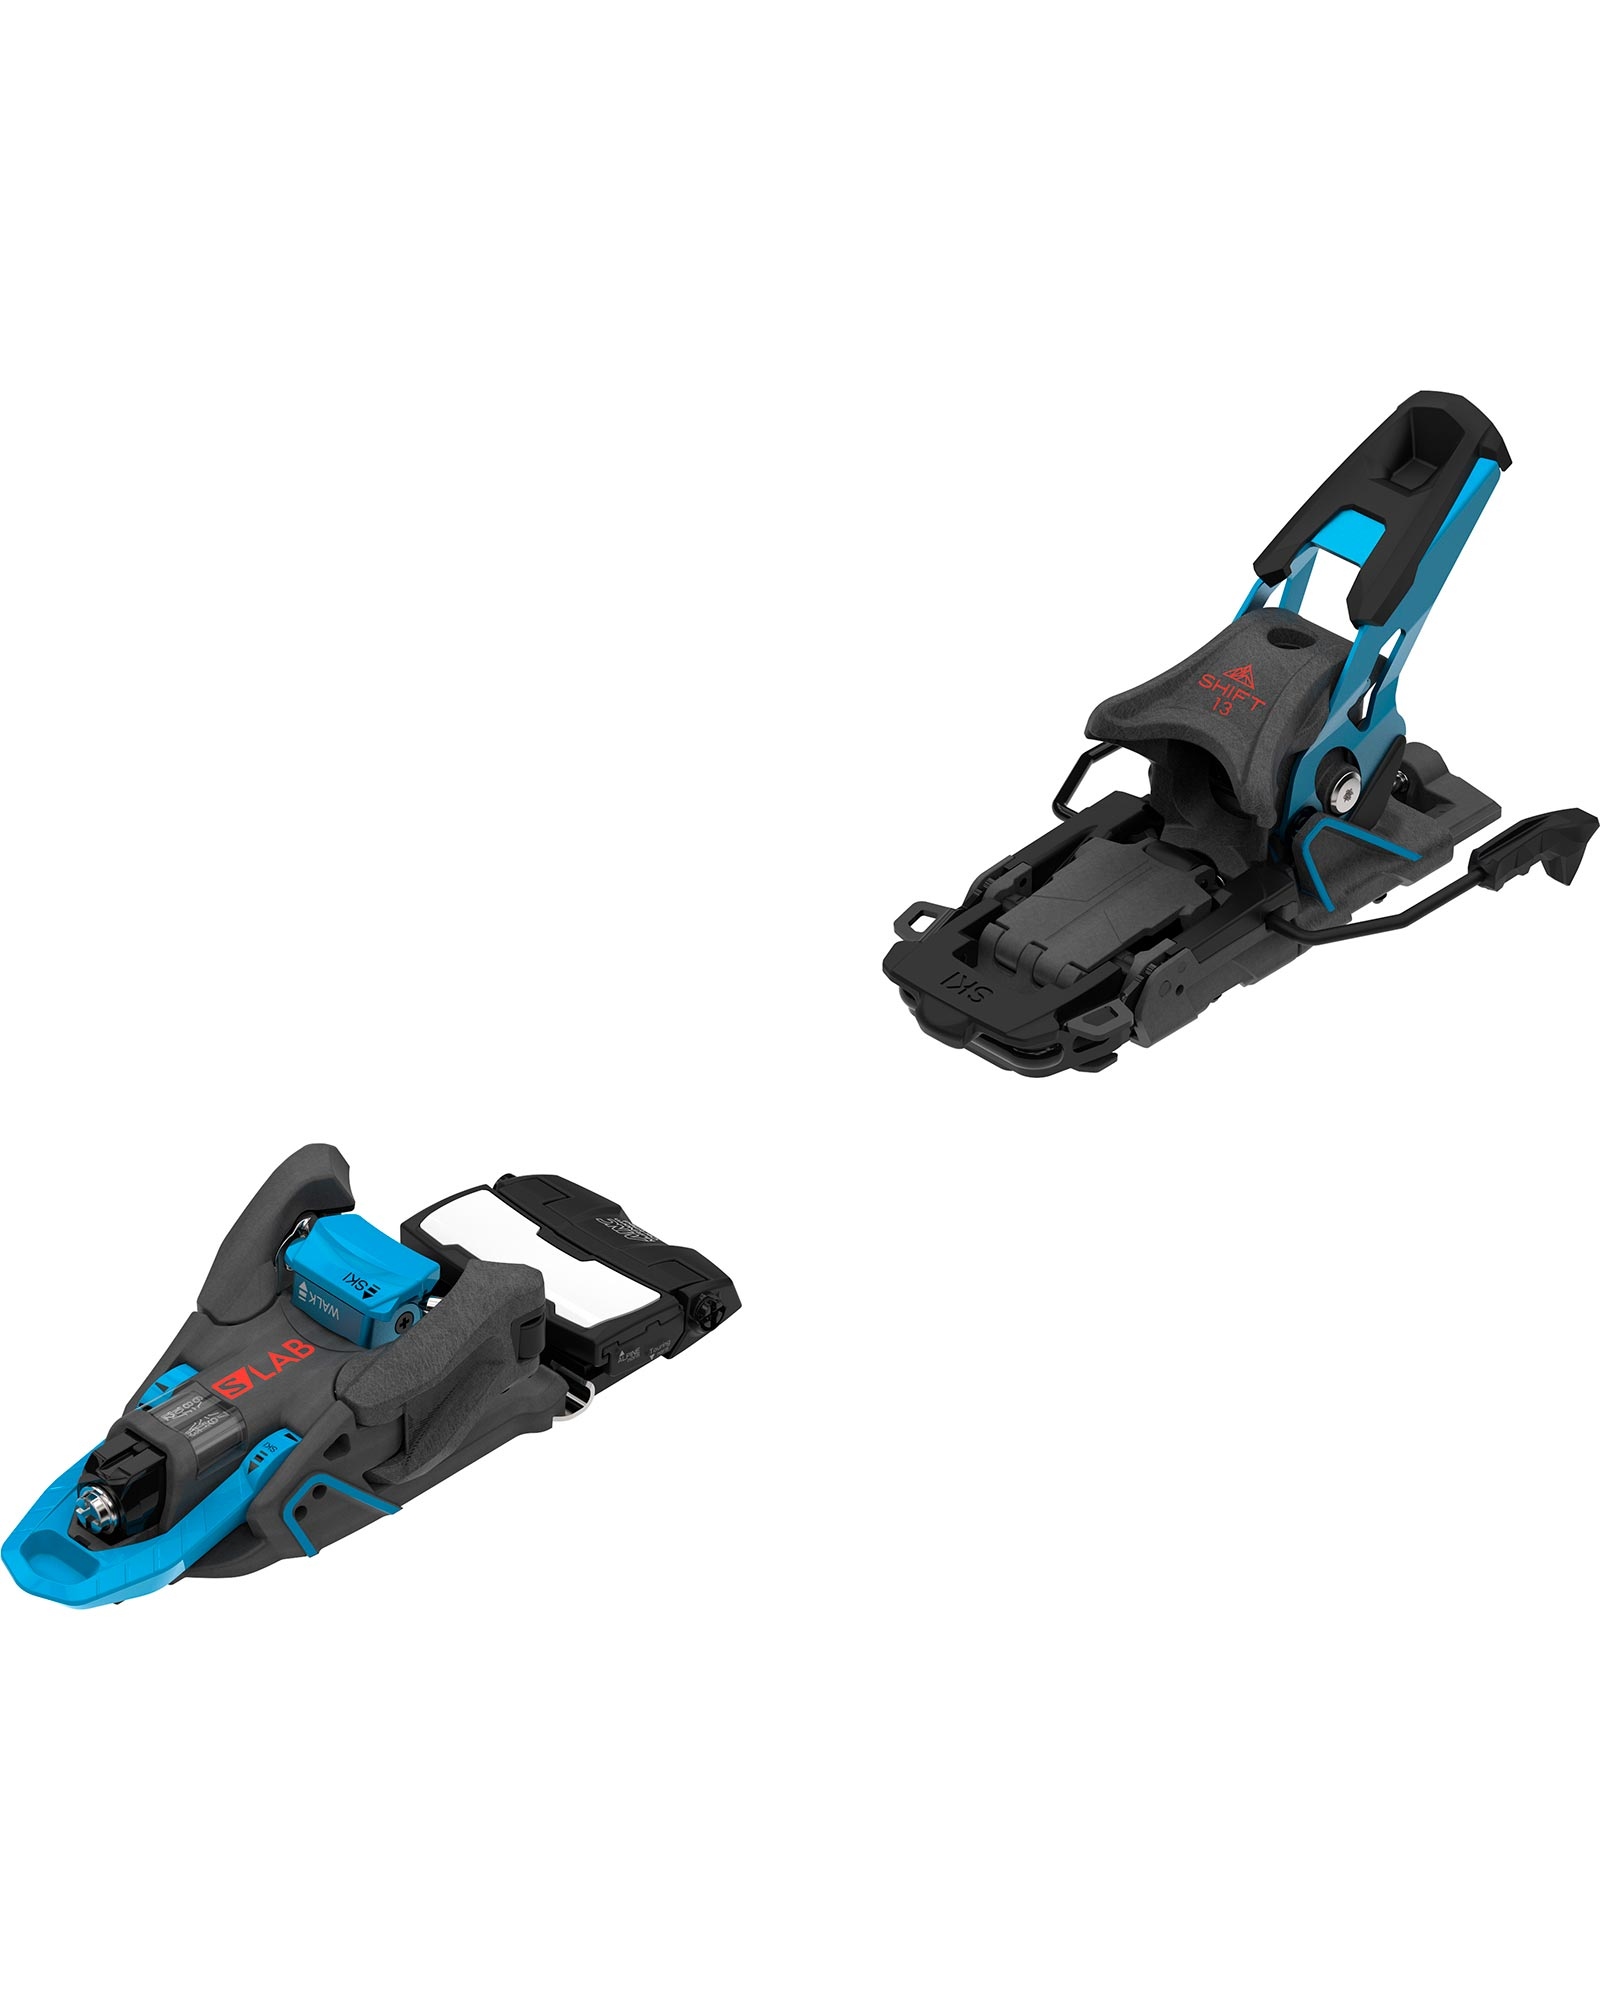 Salomon S/LAB Shift MNC 13 100mm Backcountry Ski Bindings 2020 / 2021 0